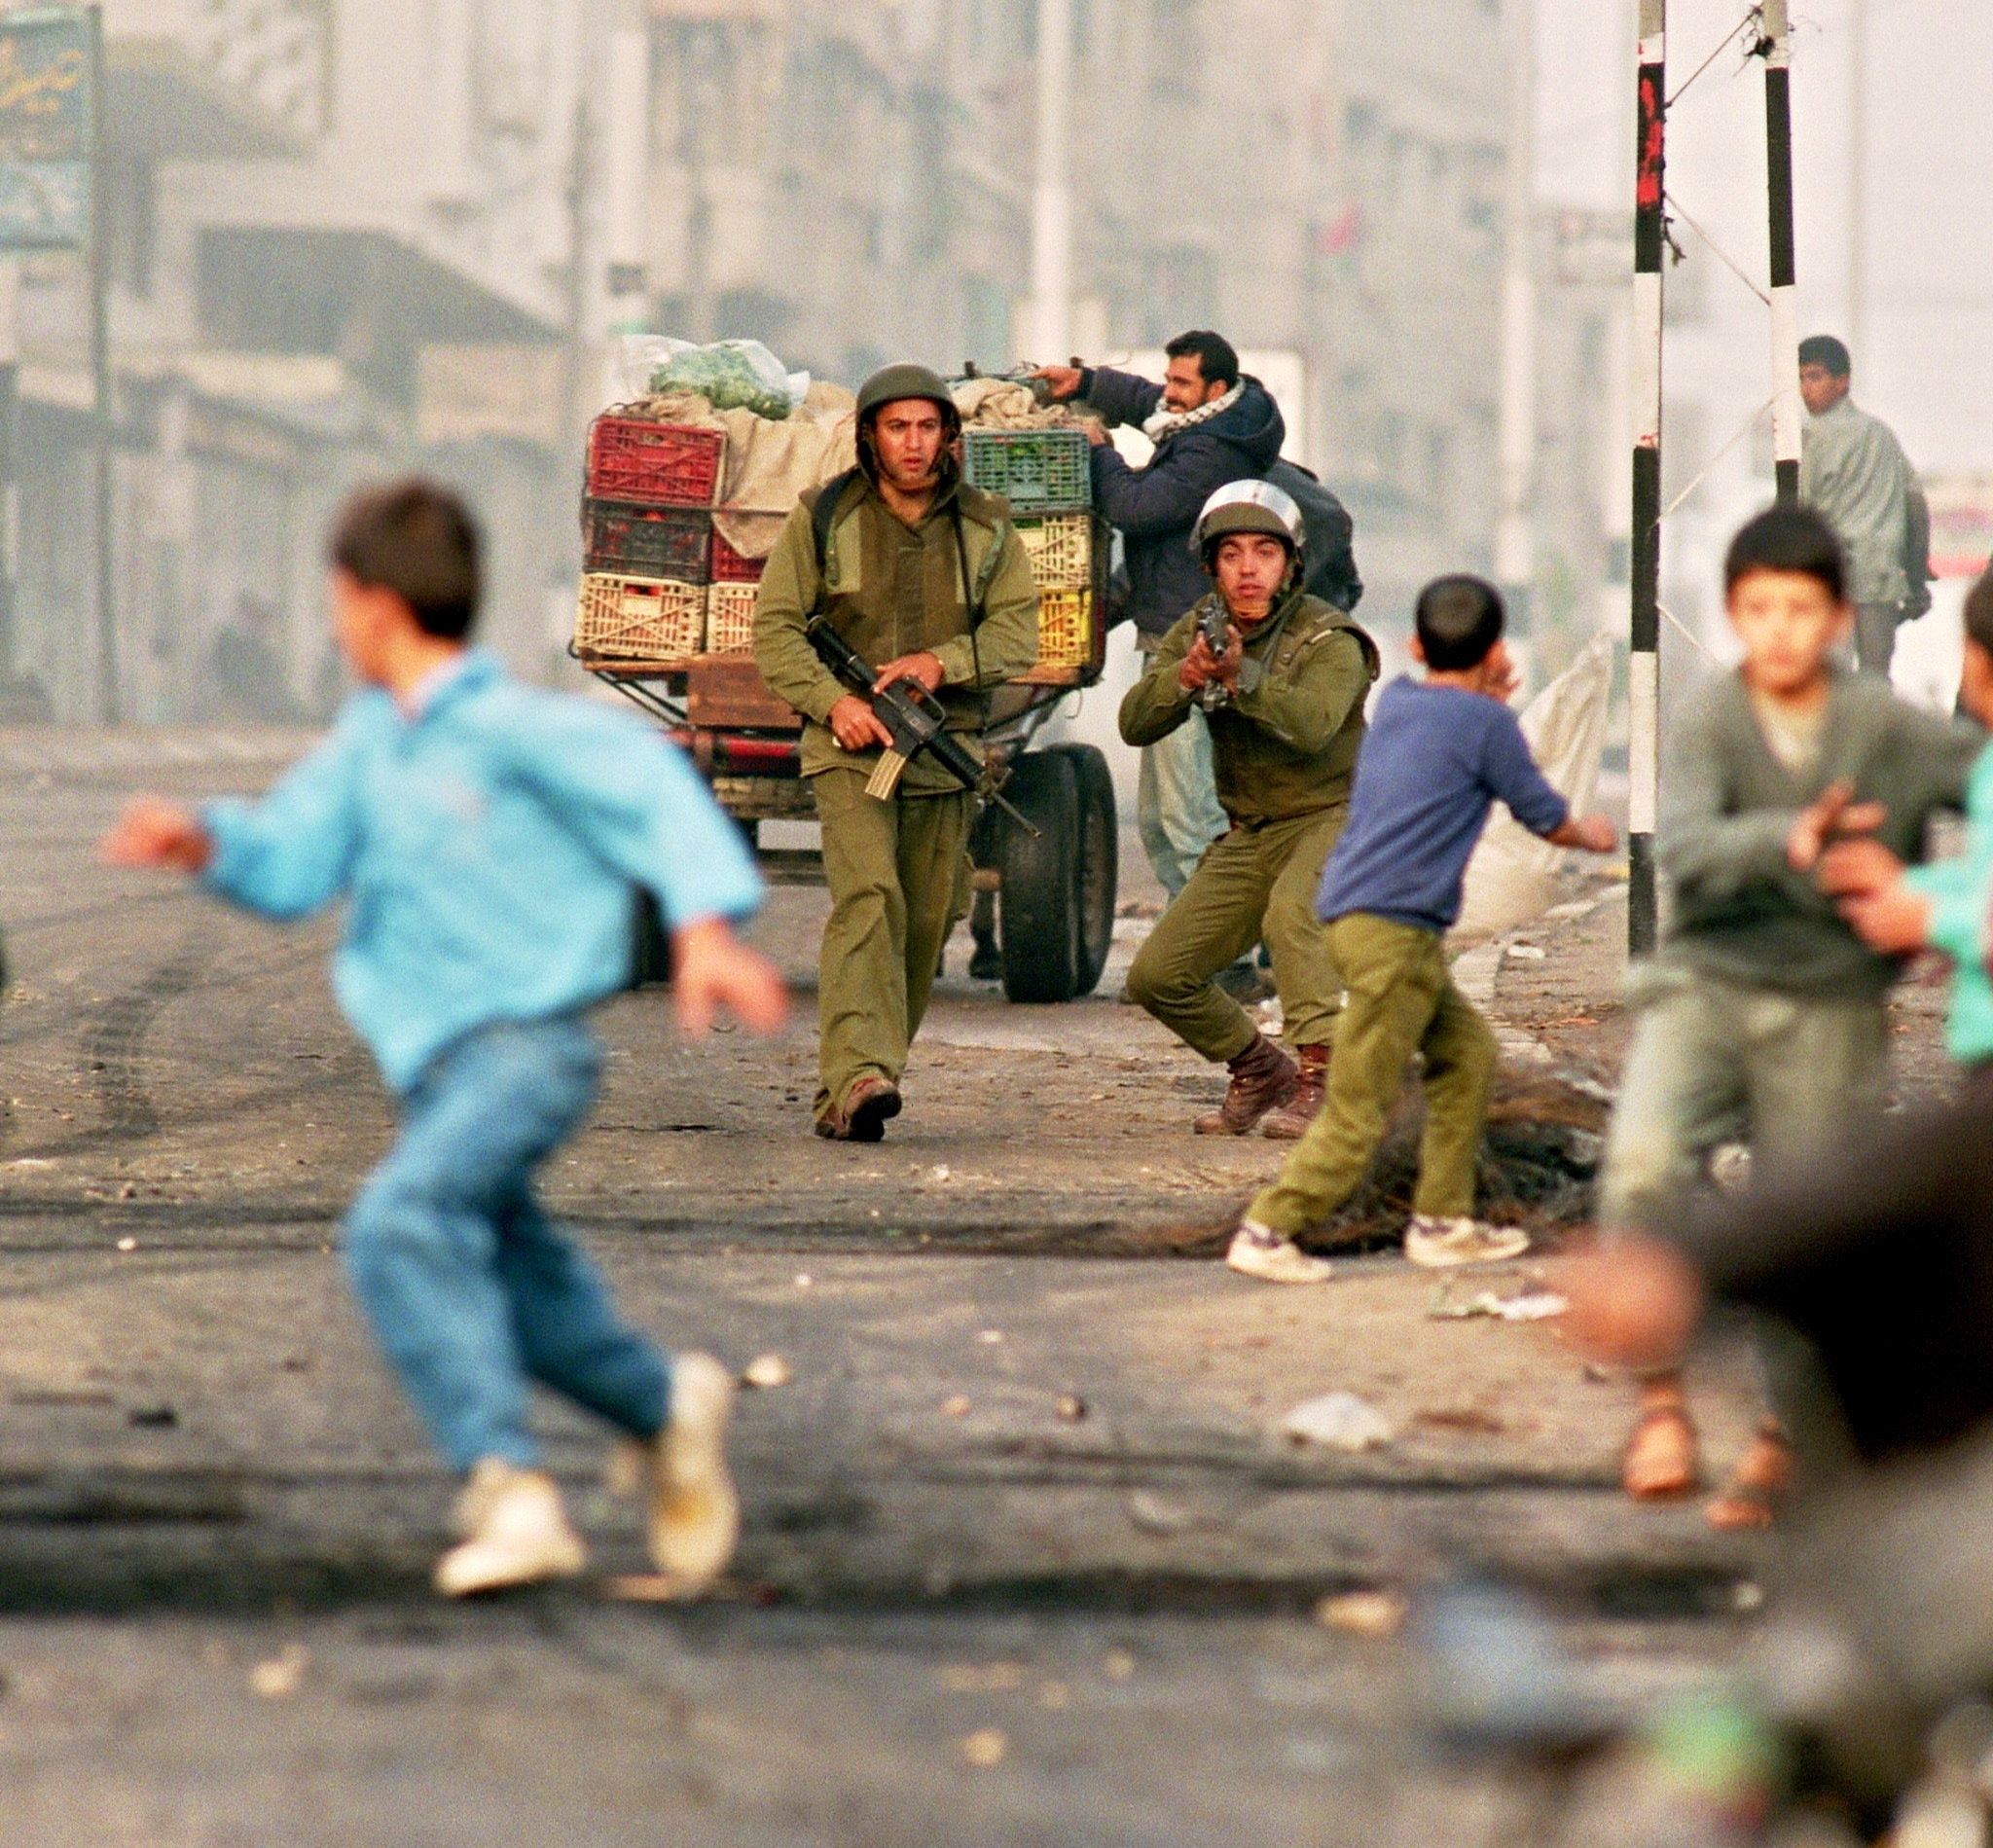 Palestinian youngsters flee Israeli soldiers during riots 26 November 1993 in Gaza City